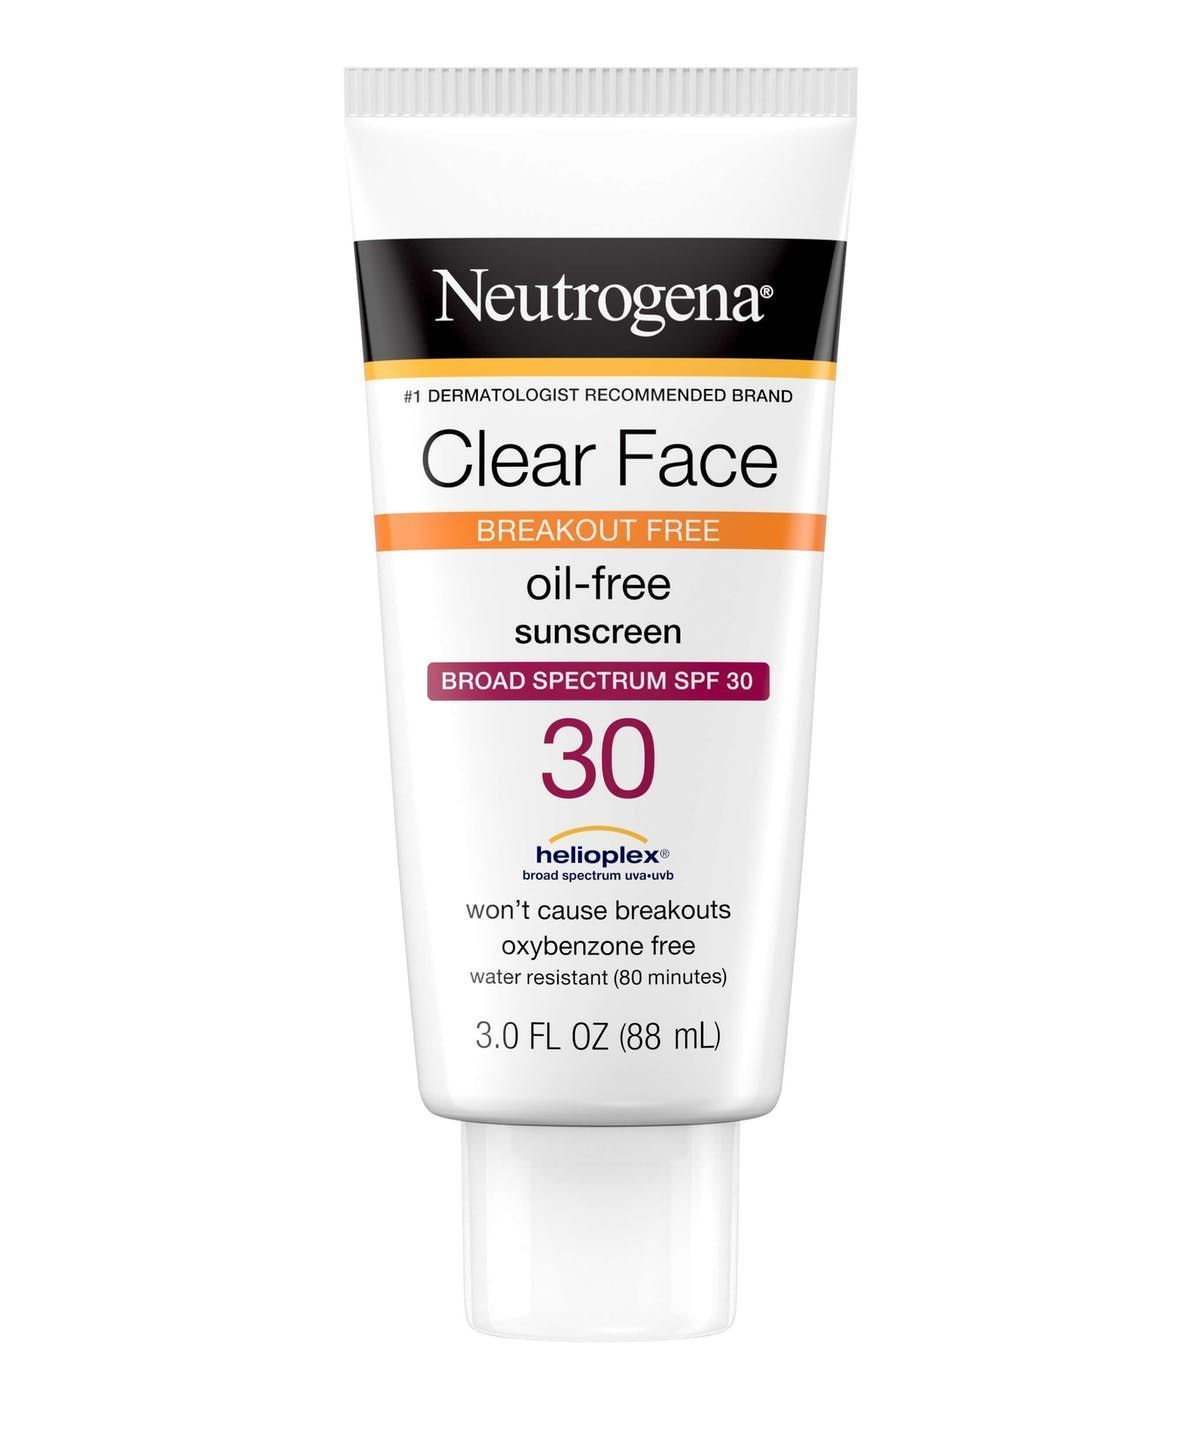 Clear Face Breakout Free Oil-Free Sunscreen Broad Spectrum SPF 30